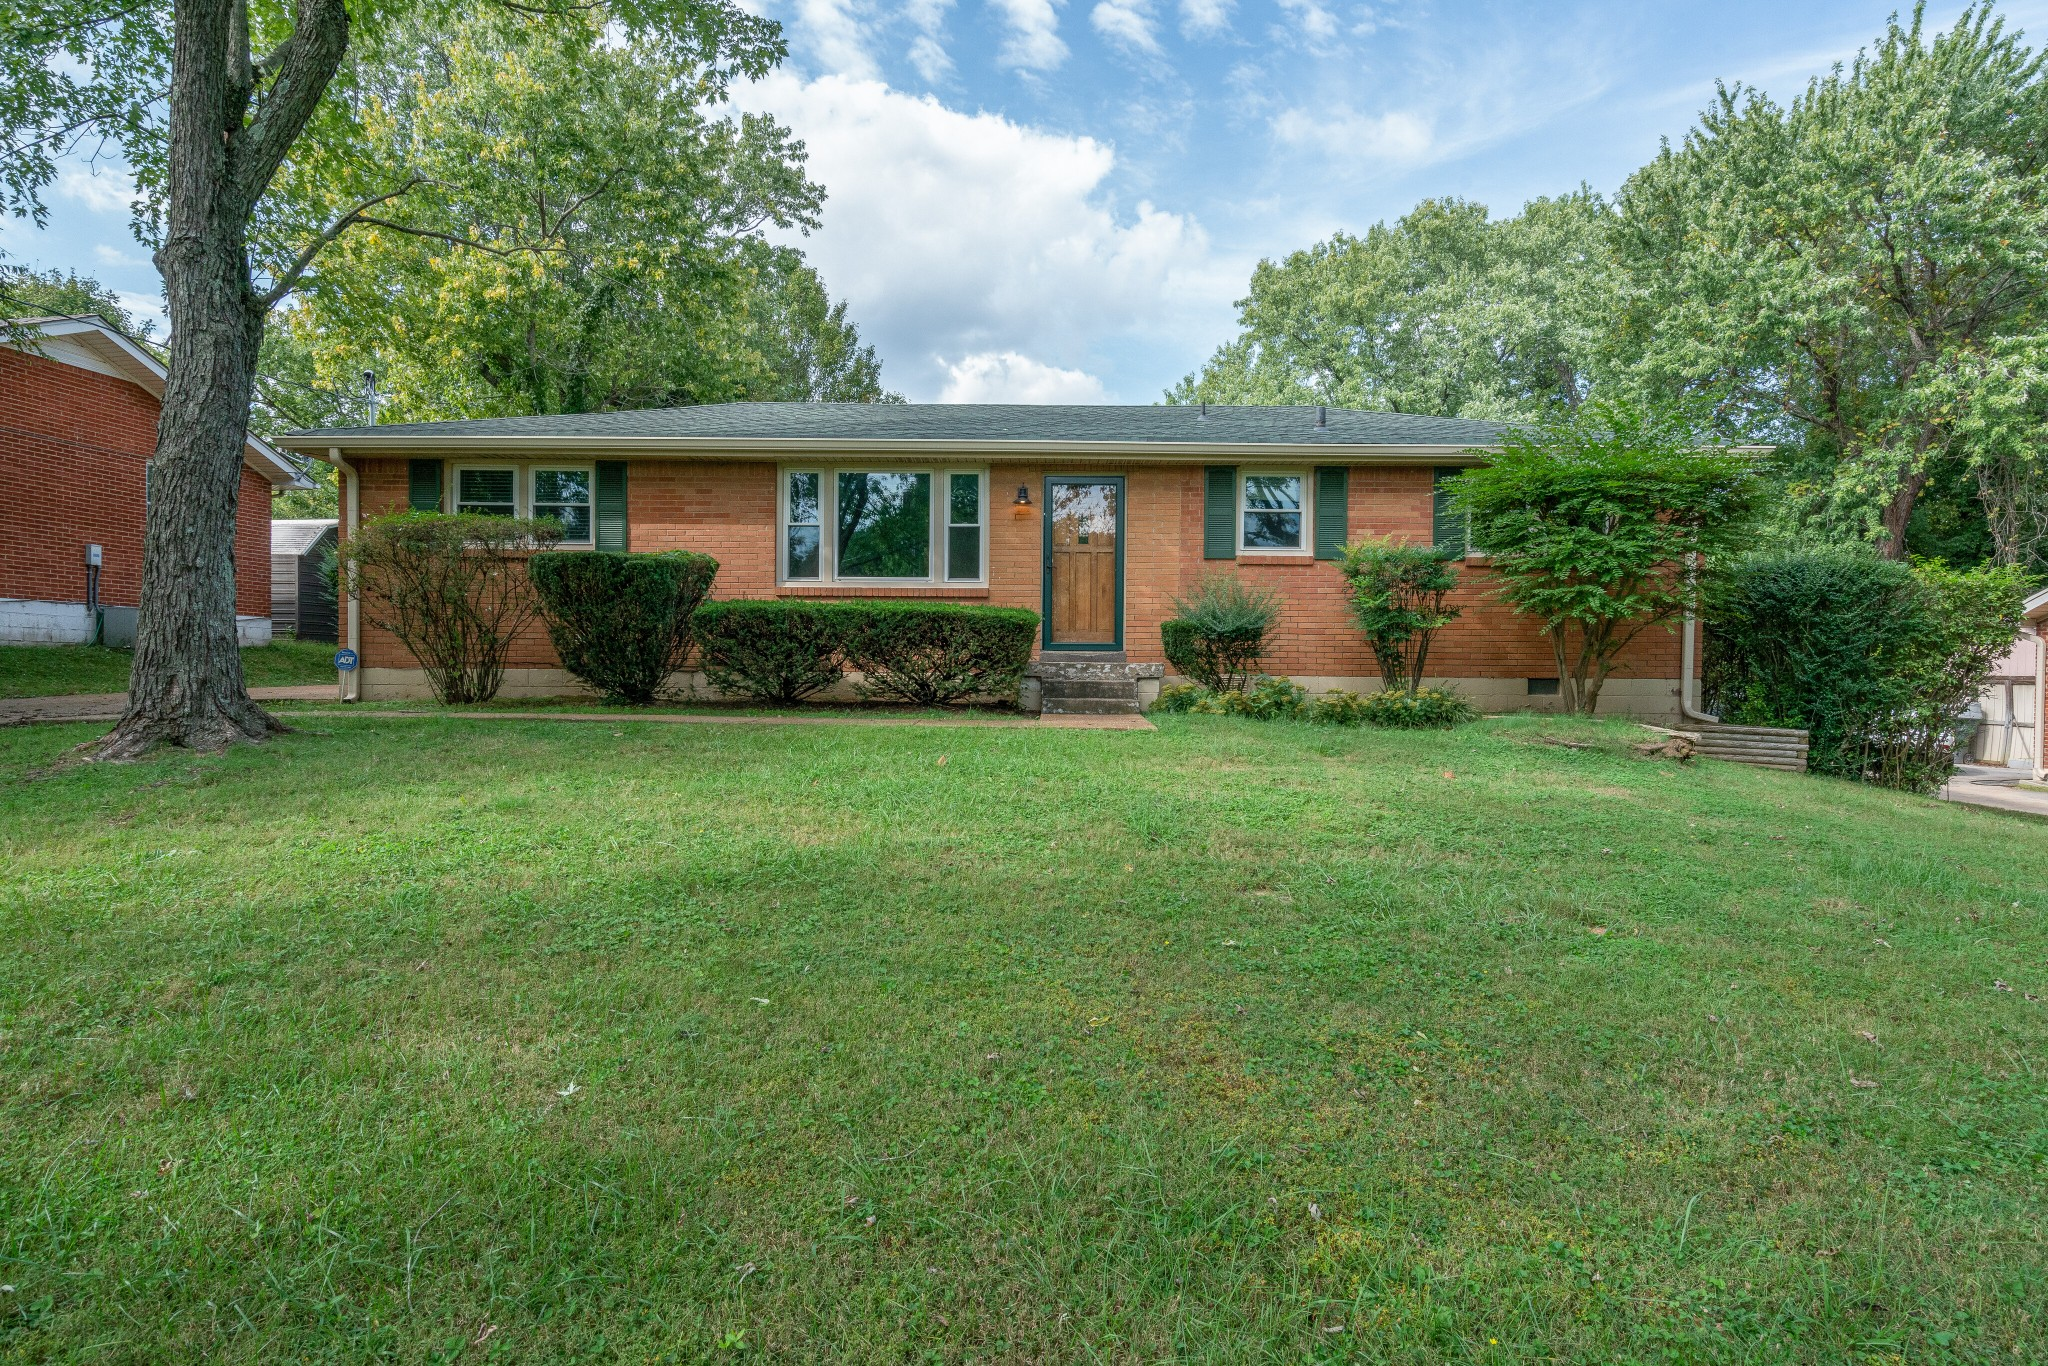 Fantastic location, Fantastic Neighborhood. This lovely south-facing 3BR and 1.5 BATH ranch-style home sits on a huge lot and is just a few yards away from Nolensville Pike. All brick exterior. Covered Rear Patio. Storage Shed. Don't miss this opportunity!